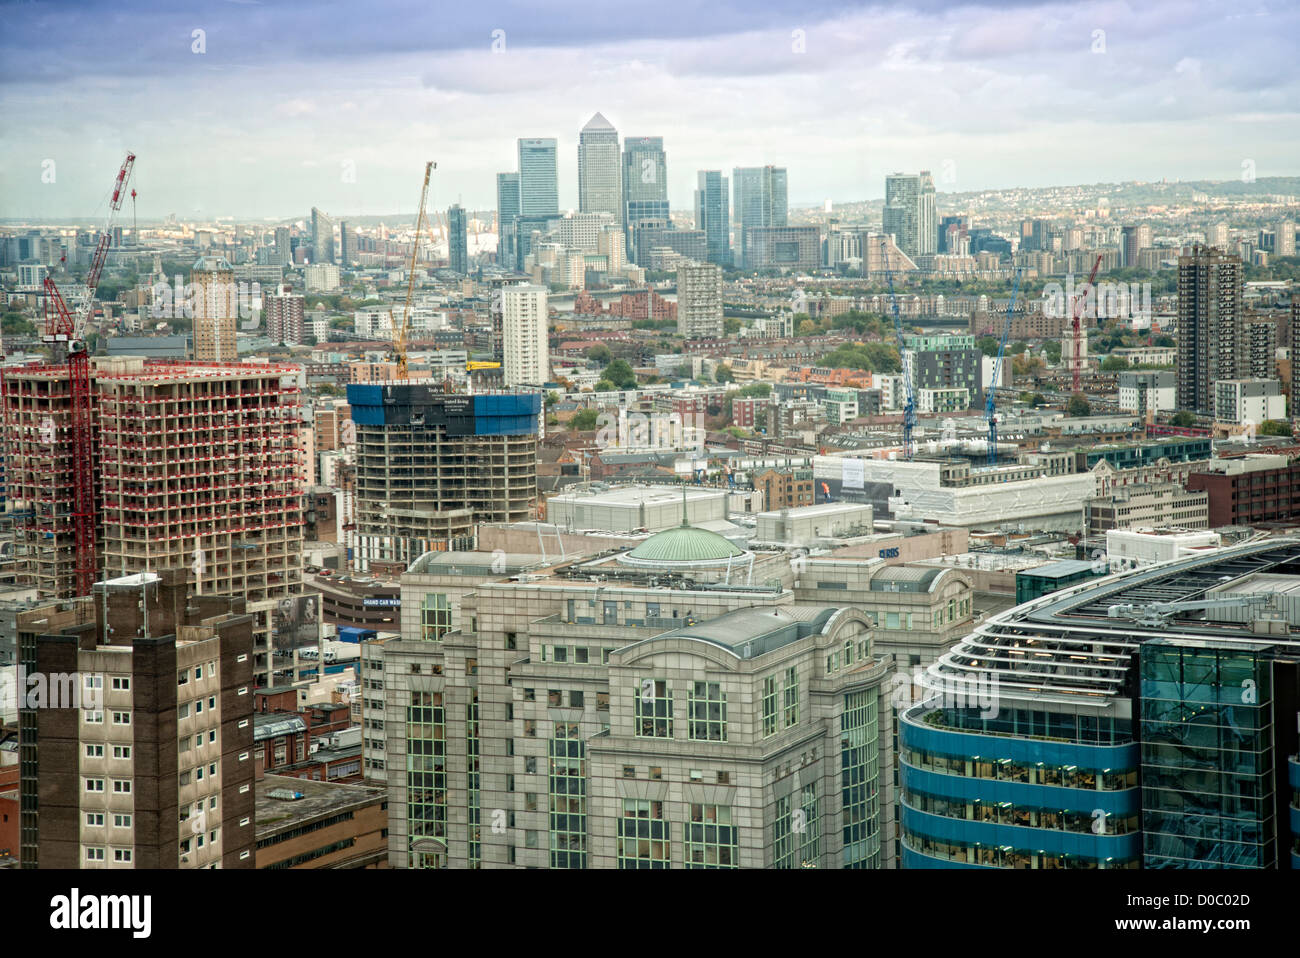 view across London to docklands - Stock Image